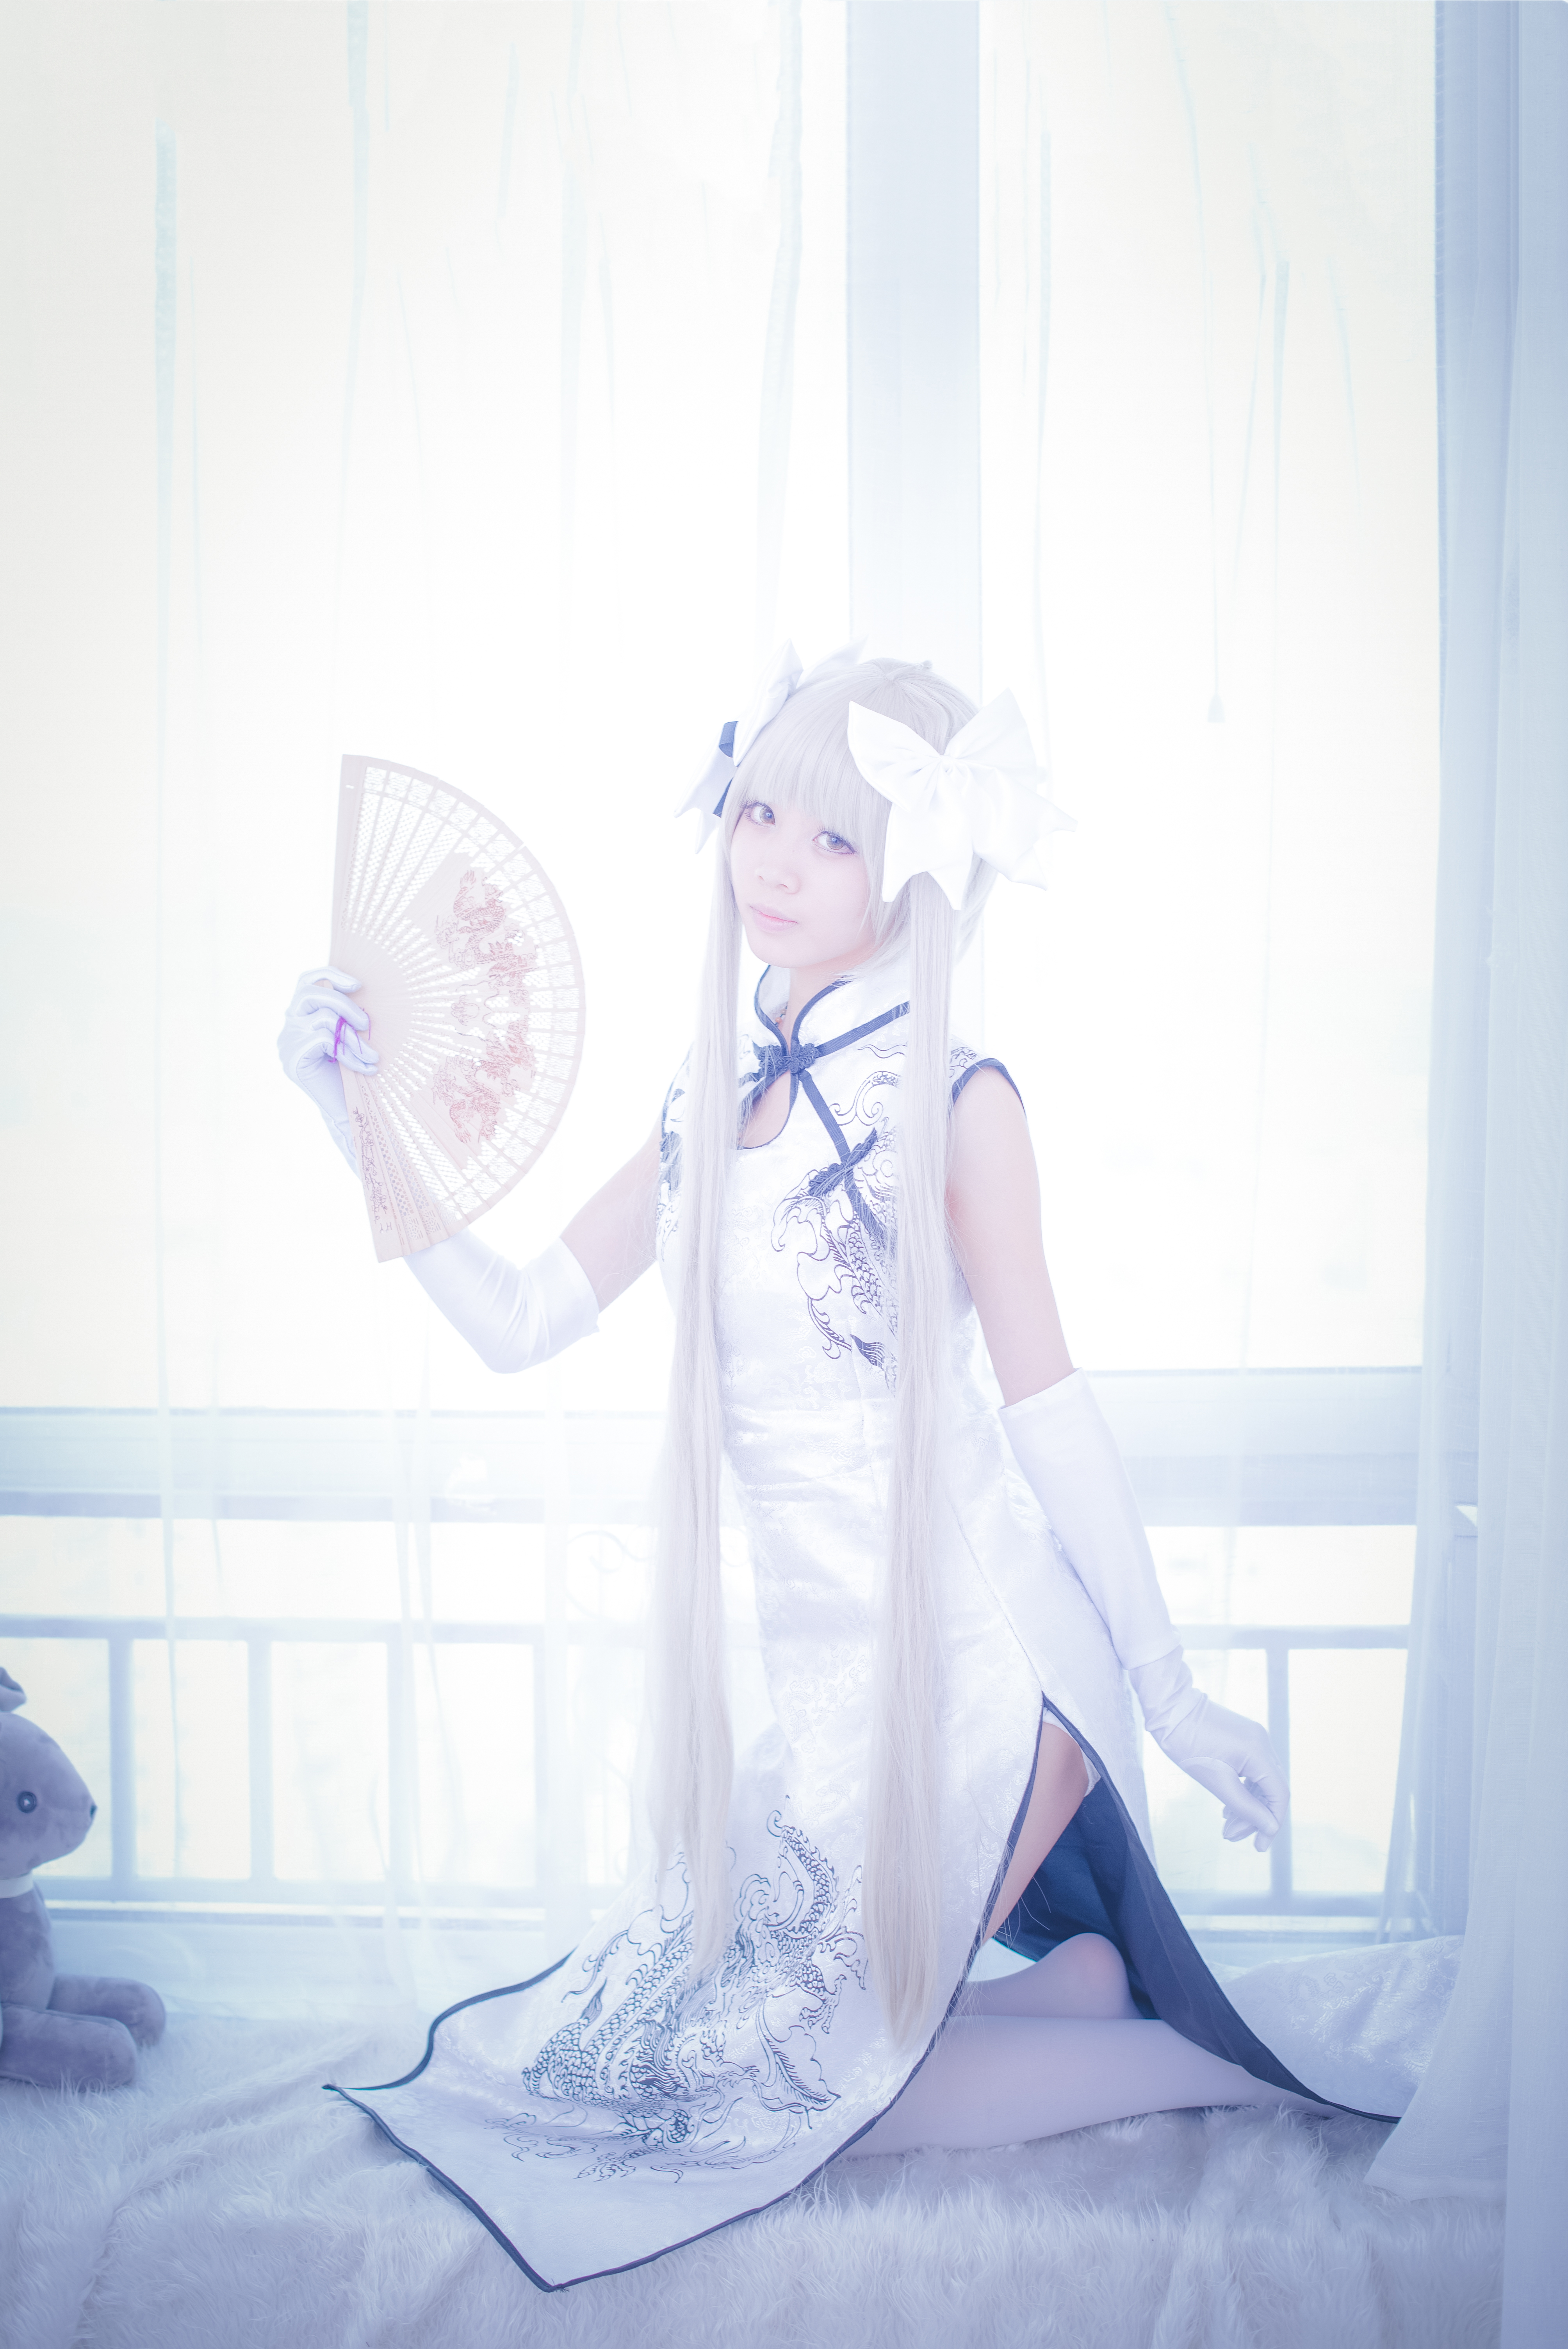 【Cosplay】缘之空 黑穹